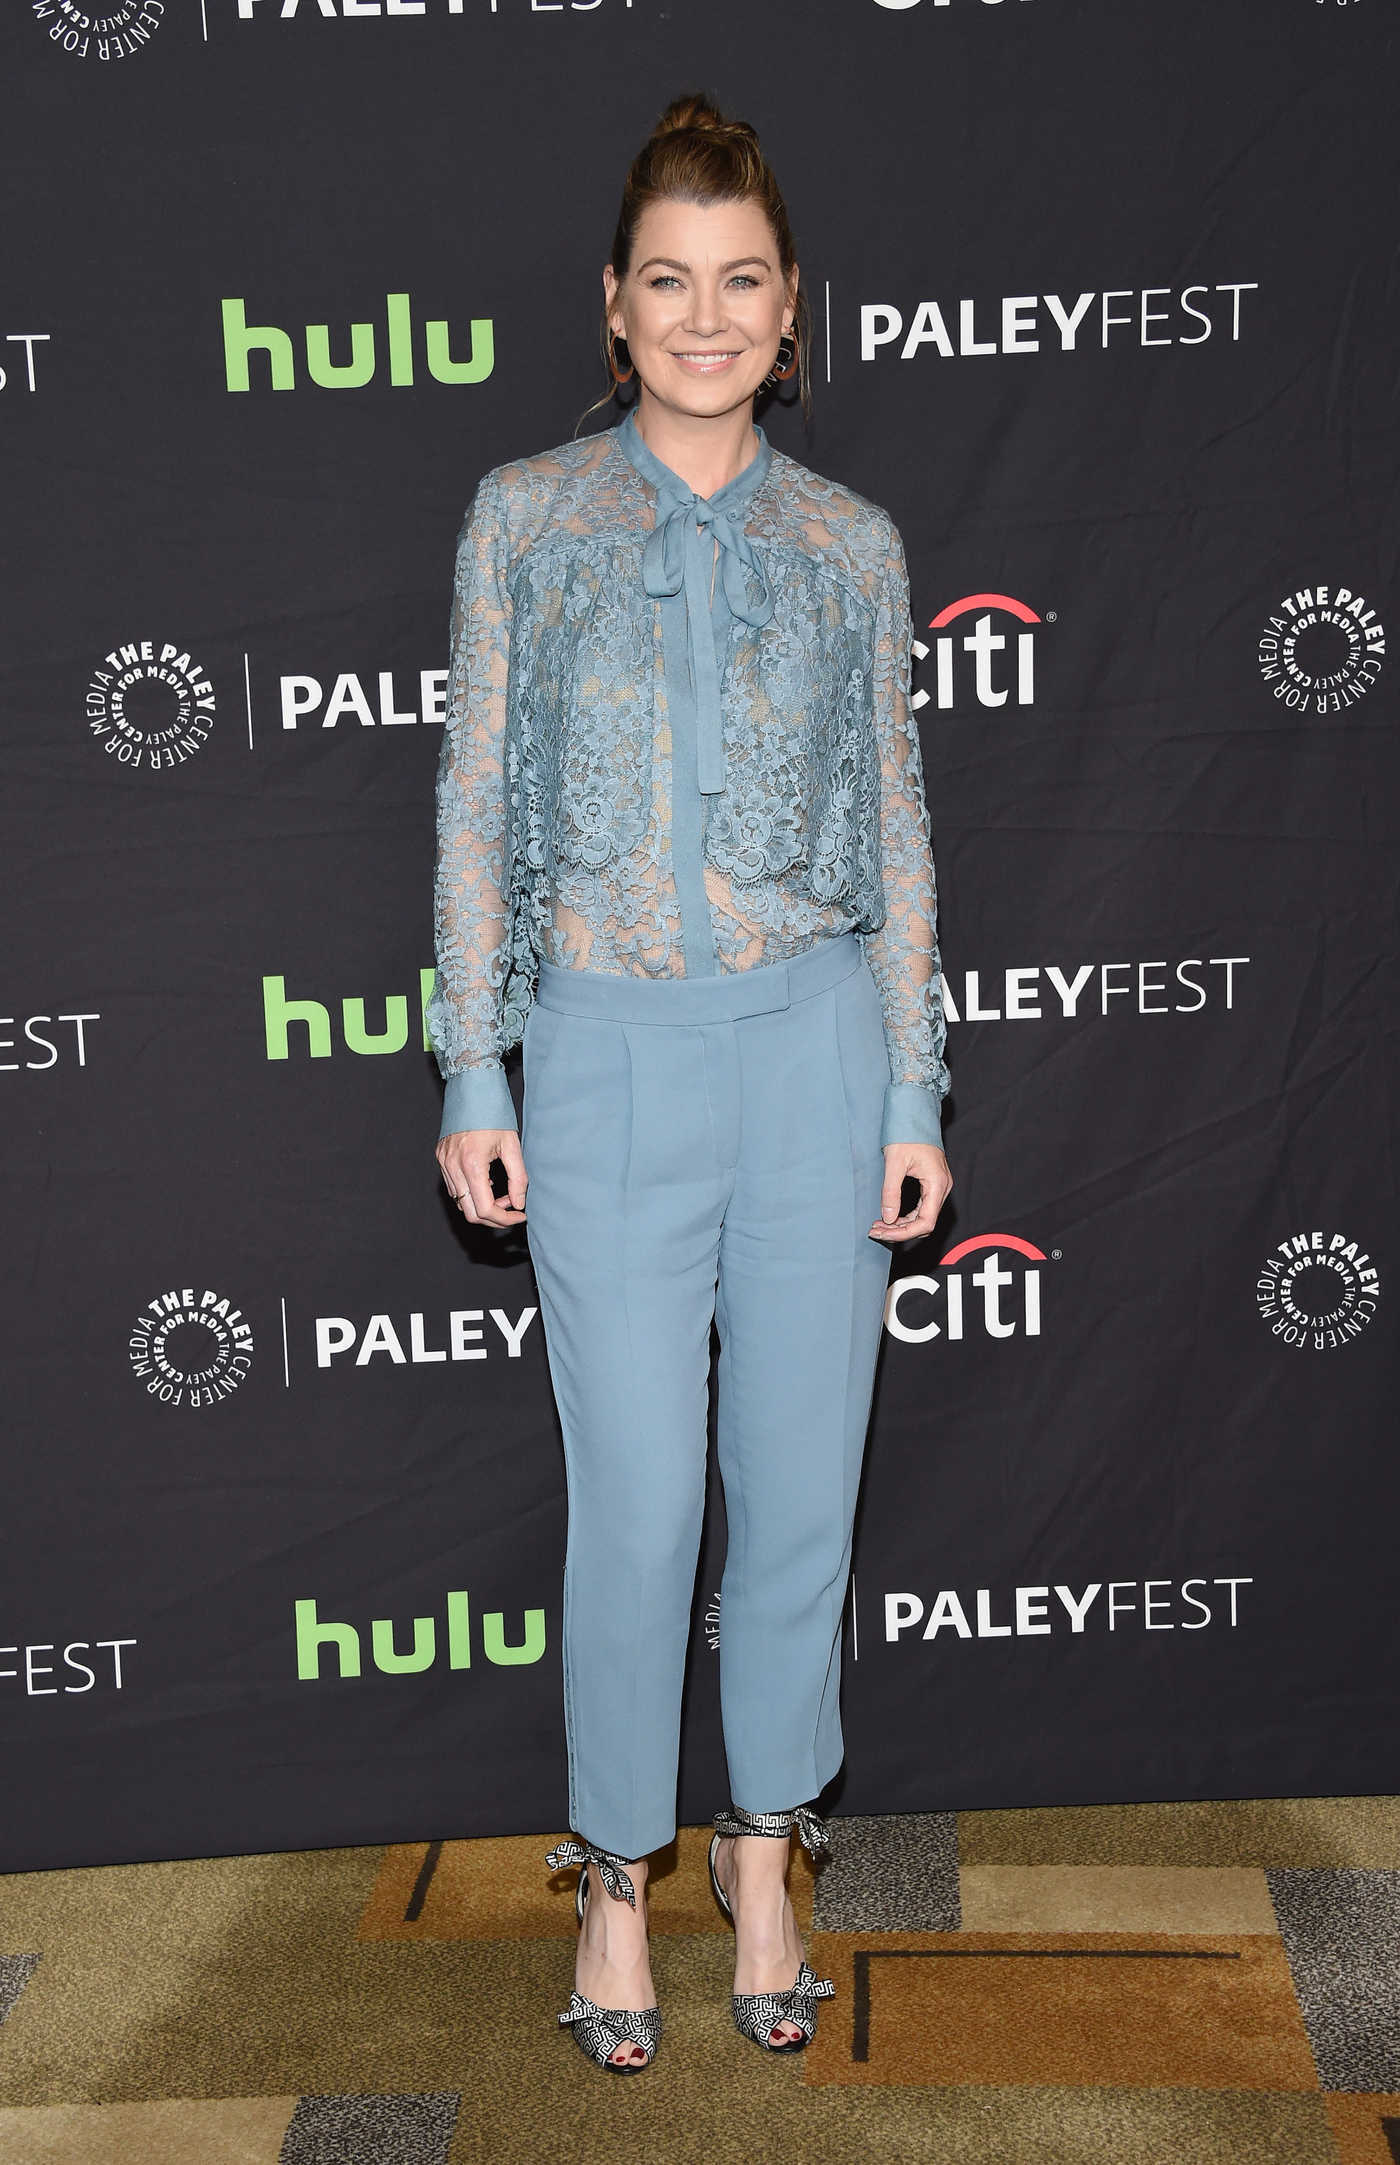 Ellen Pompeo at the 34th Annual PaleyFest in Los Angeles 03/19/2017